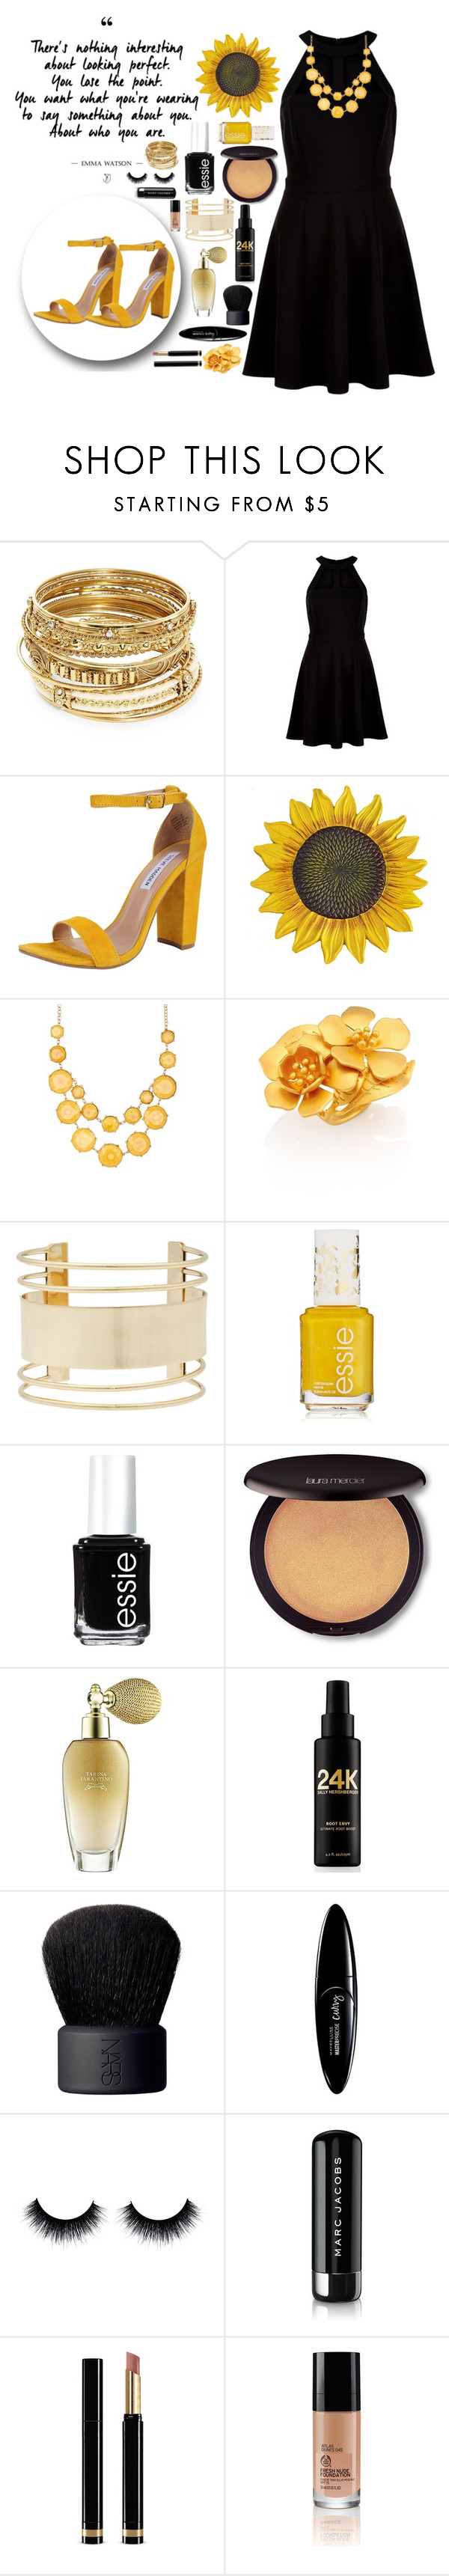 """""""Perfection is overrated"""" by weerala ❤ liked on Polyvore featuring ABS by Allen Schwartz, New Look, Steve Madden, Natasha, Valentino, Eloquii, Essie, Laura Mercier, Tarina Tarantino and Sally Hershberger"""